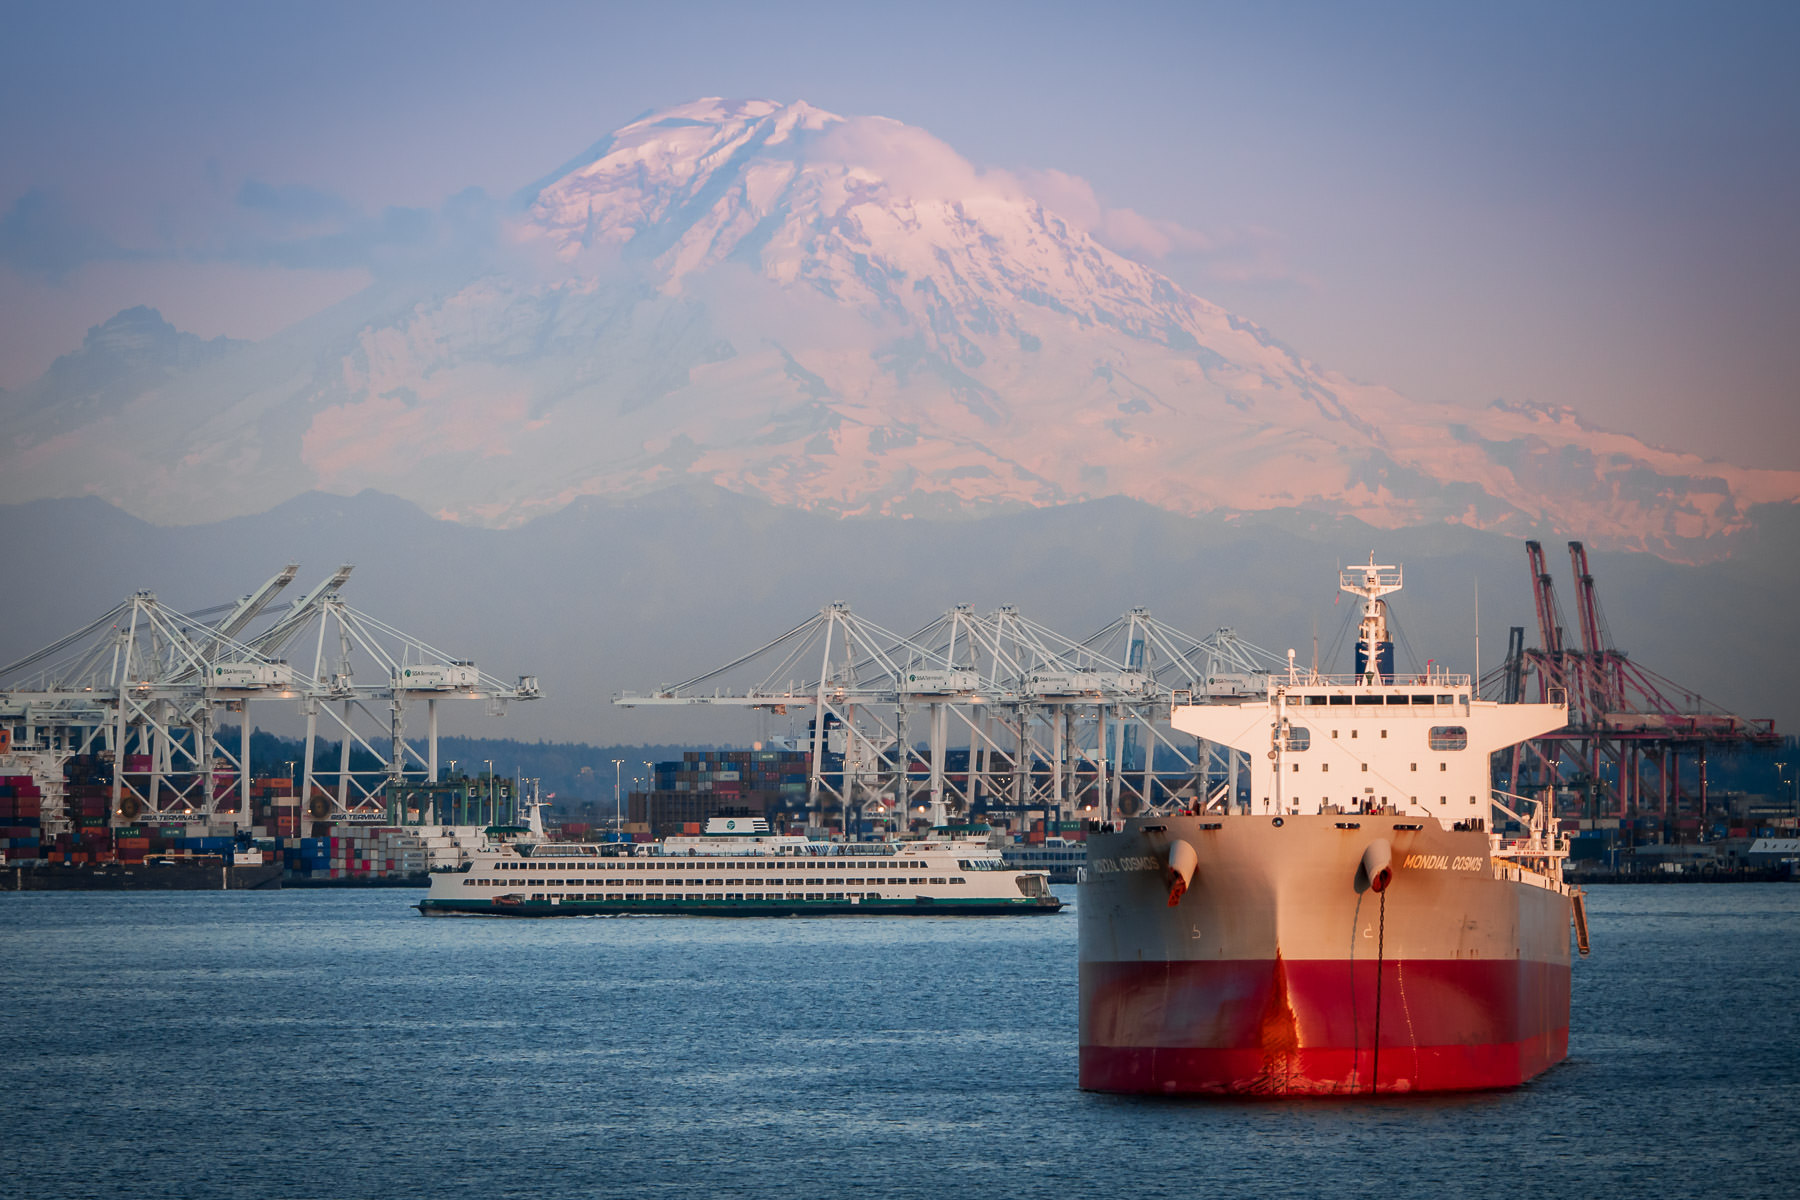 Mount Rainier rises over the Port of Seattle.